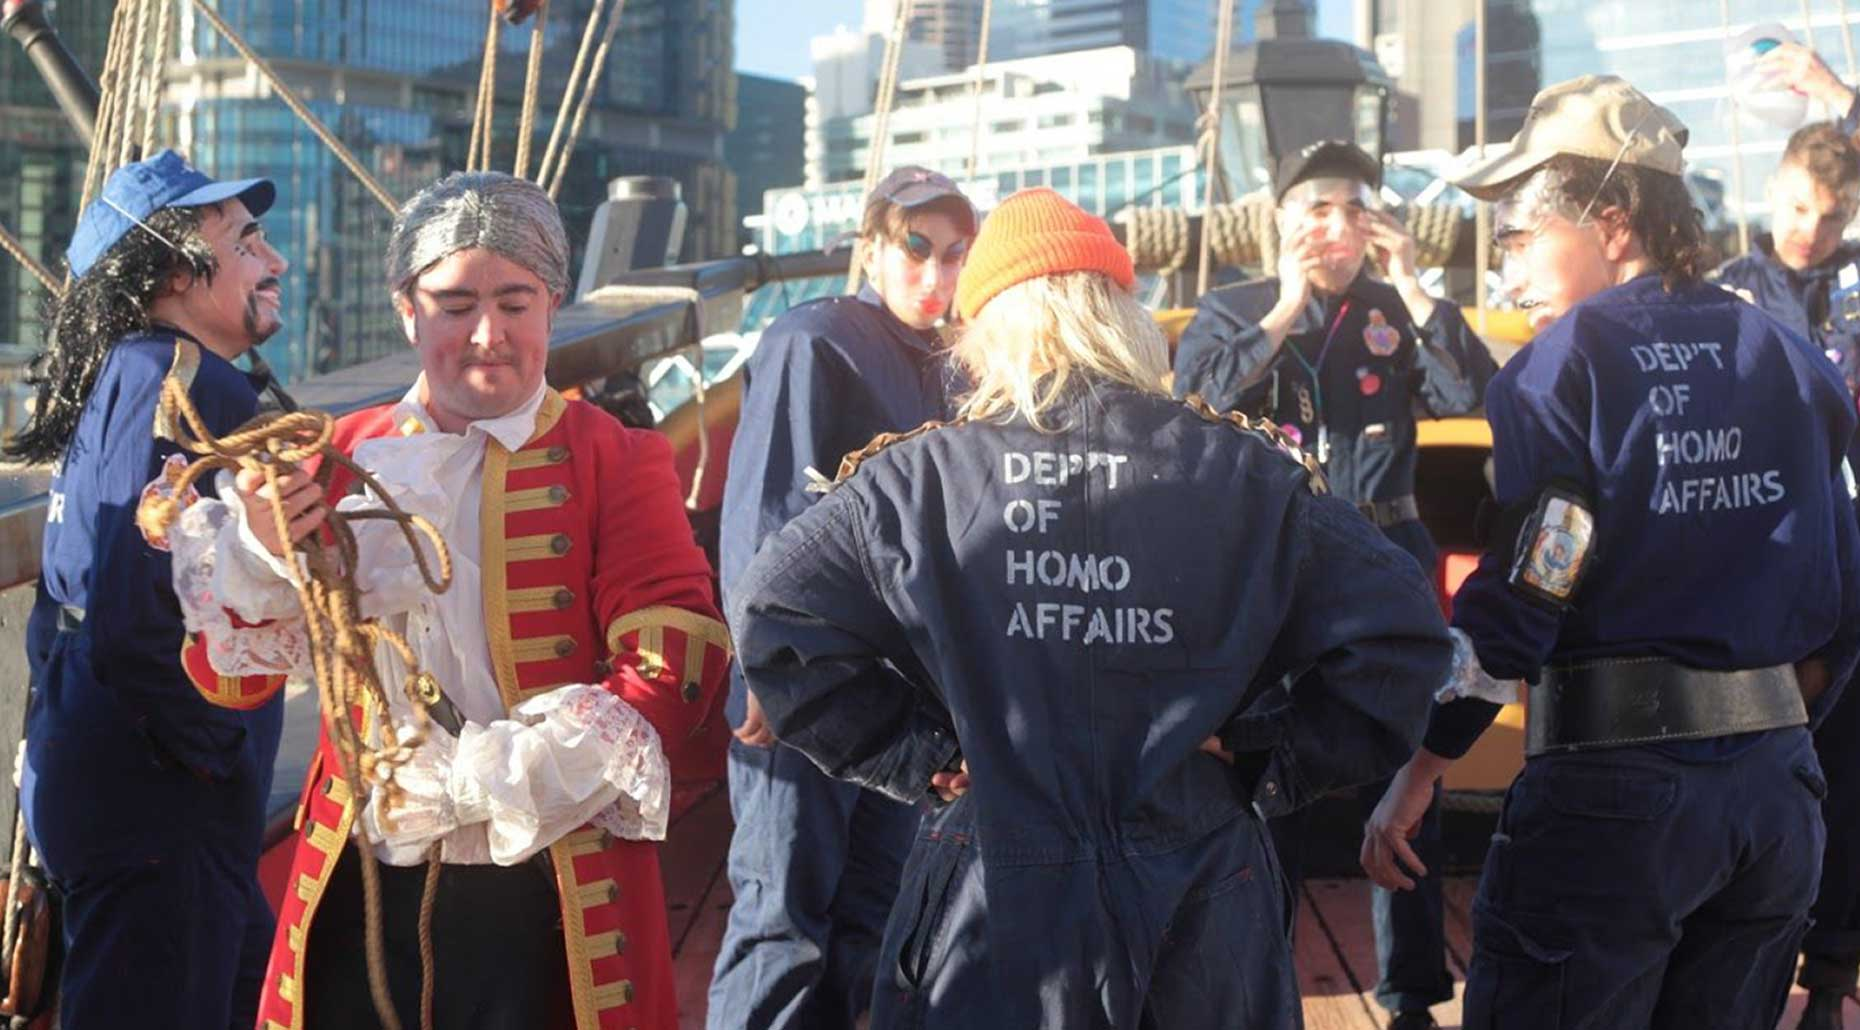 People dressed up on a ship at Sydney Harbour. Image supplied by Department of Homo Affairs.